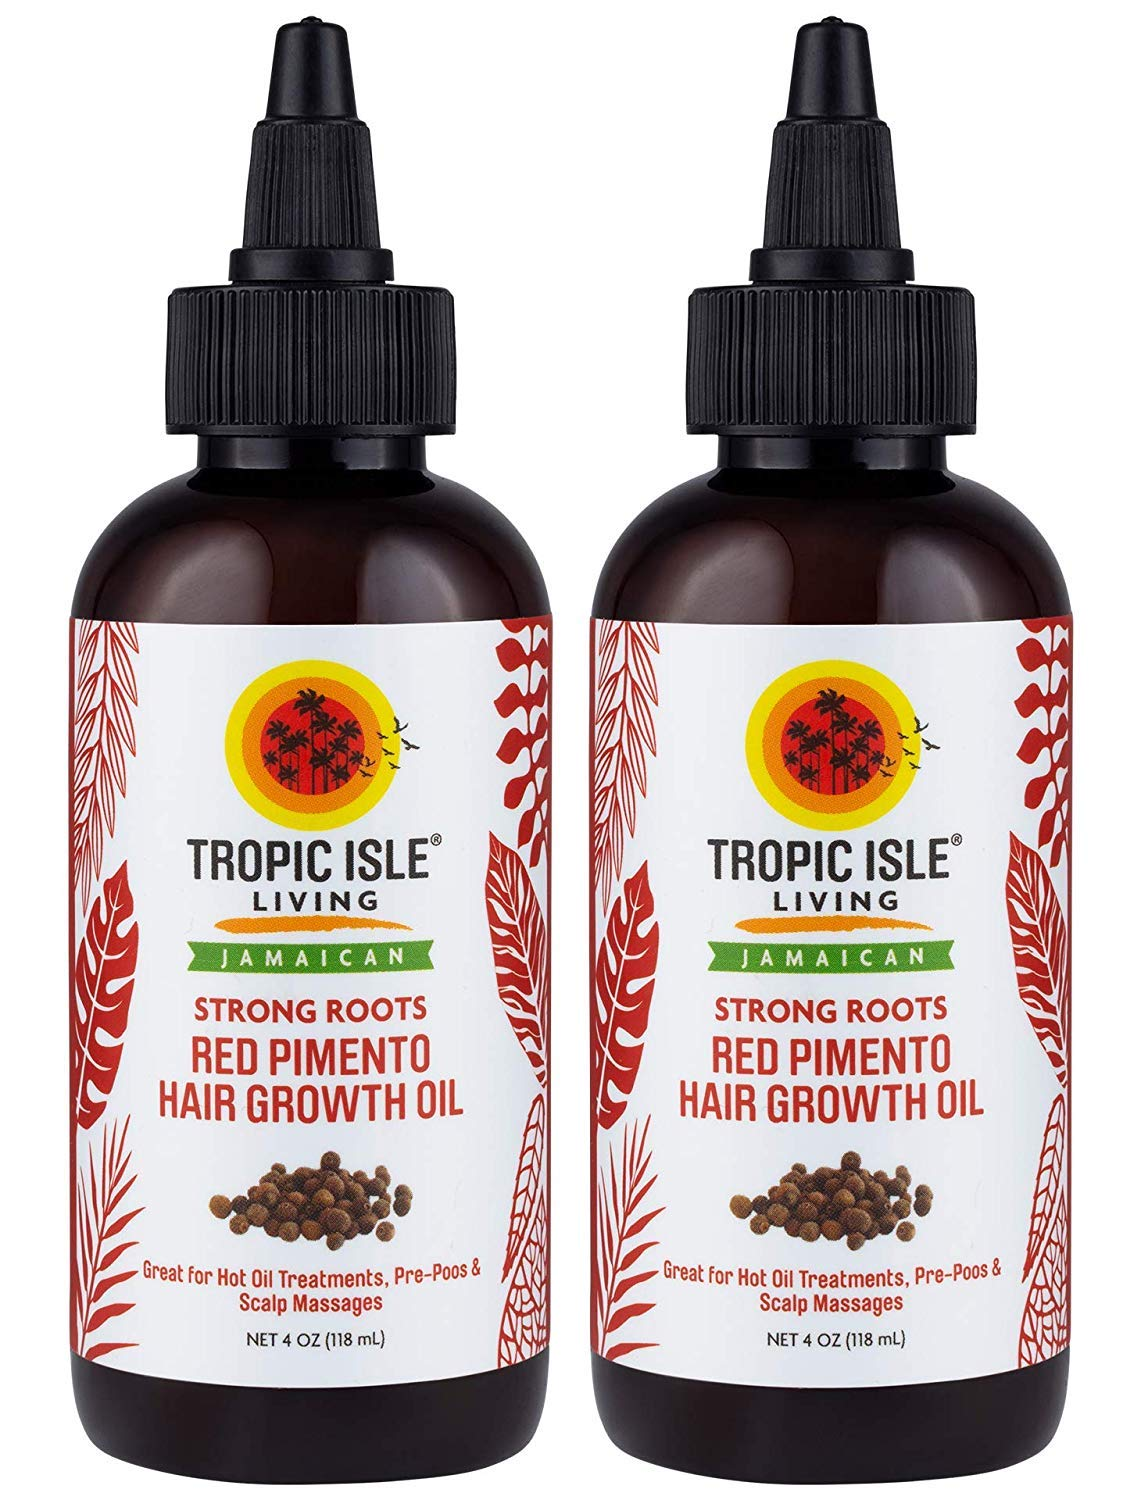 Tropic Isle Living Jamaican Al sold Clearance SALE! Limited time! out. Strong Hair Growth Red Pimento Roots